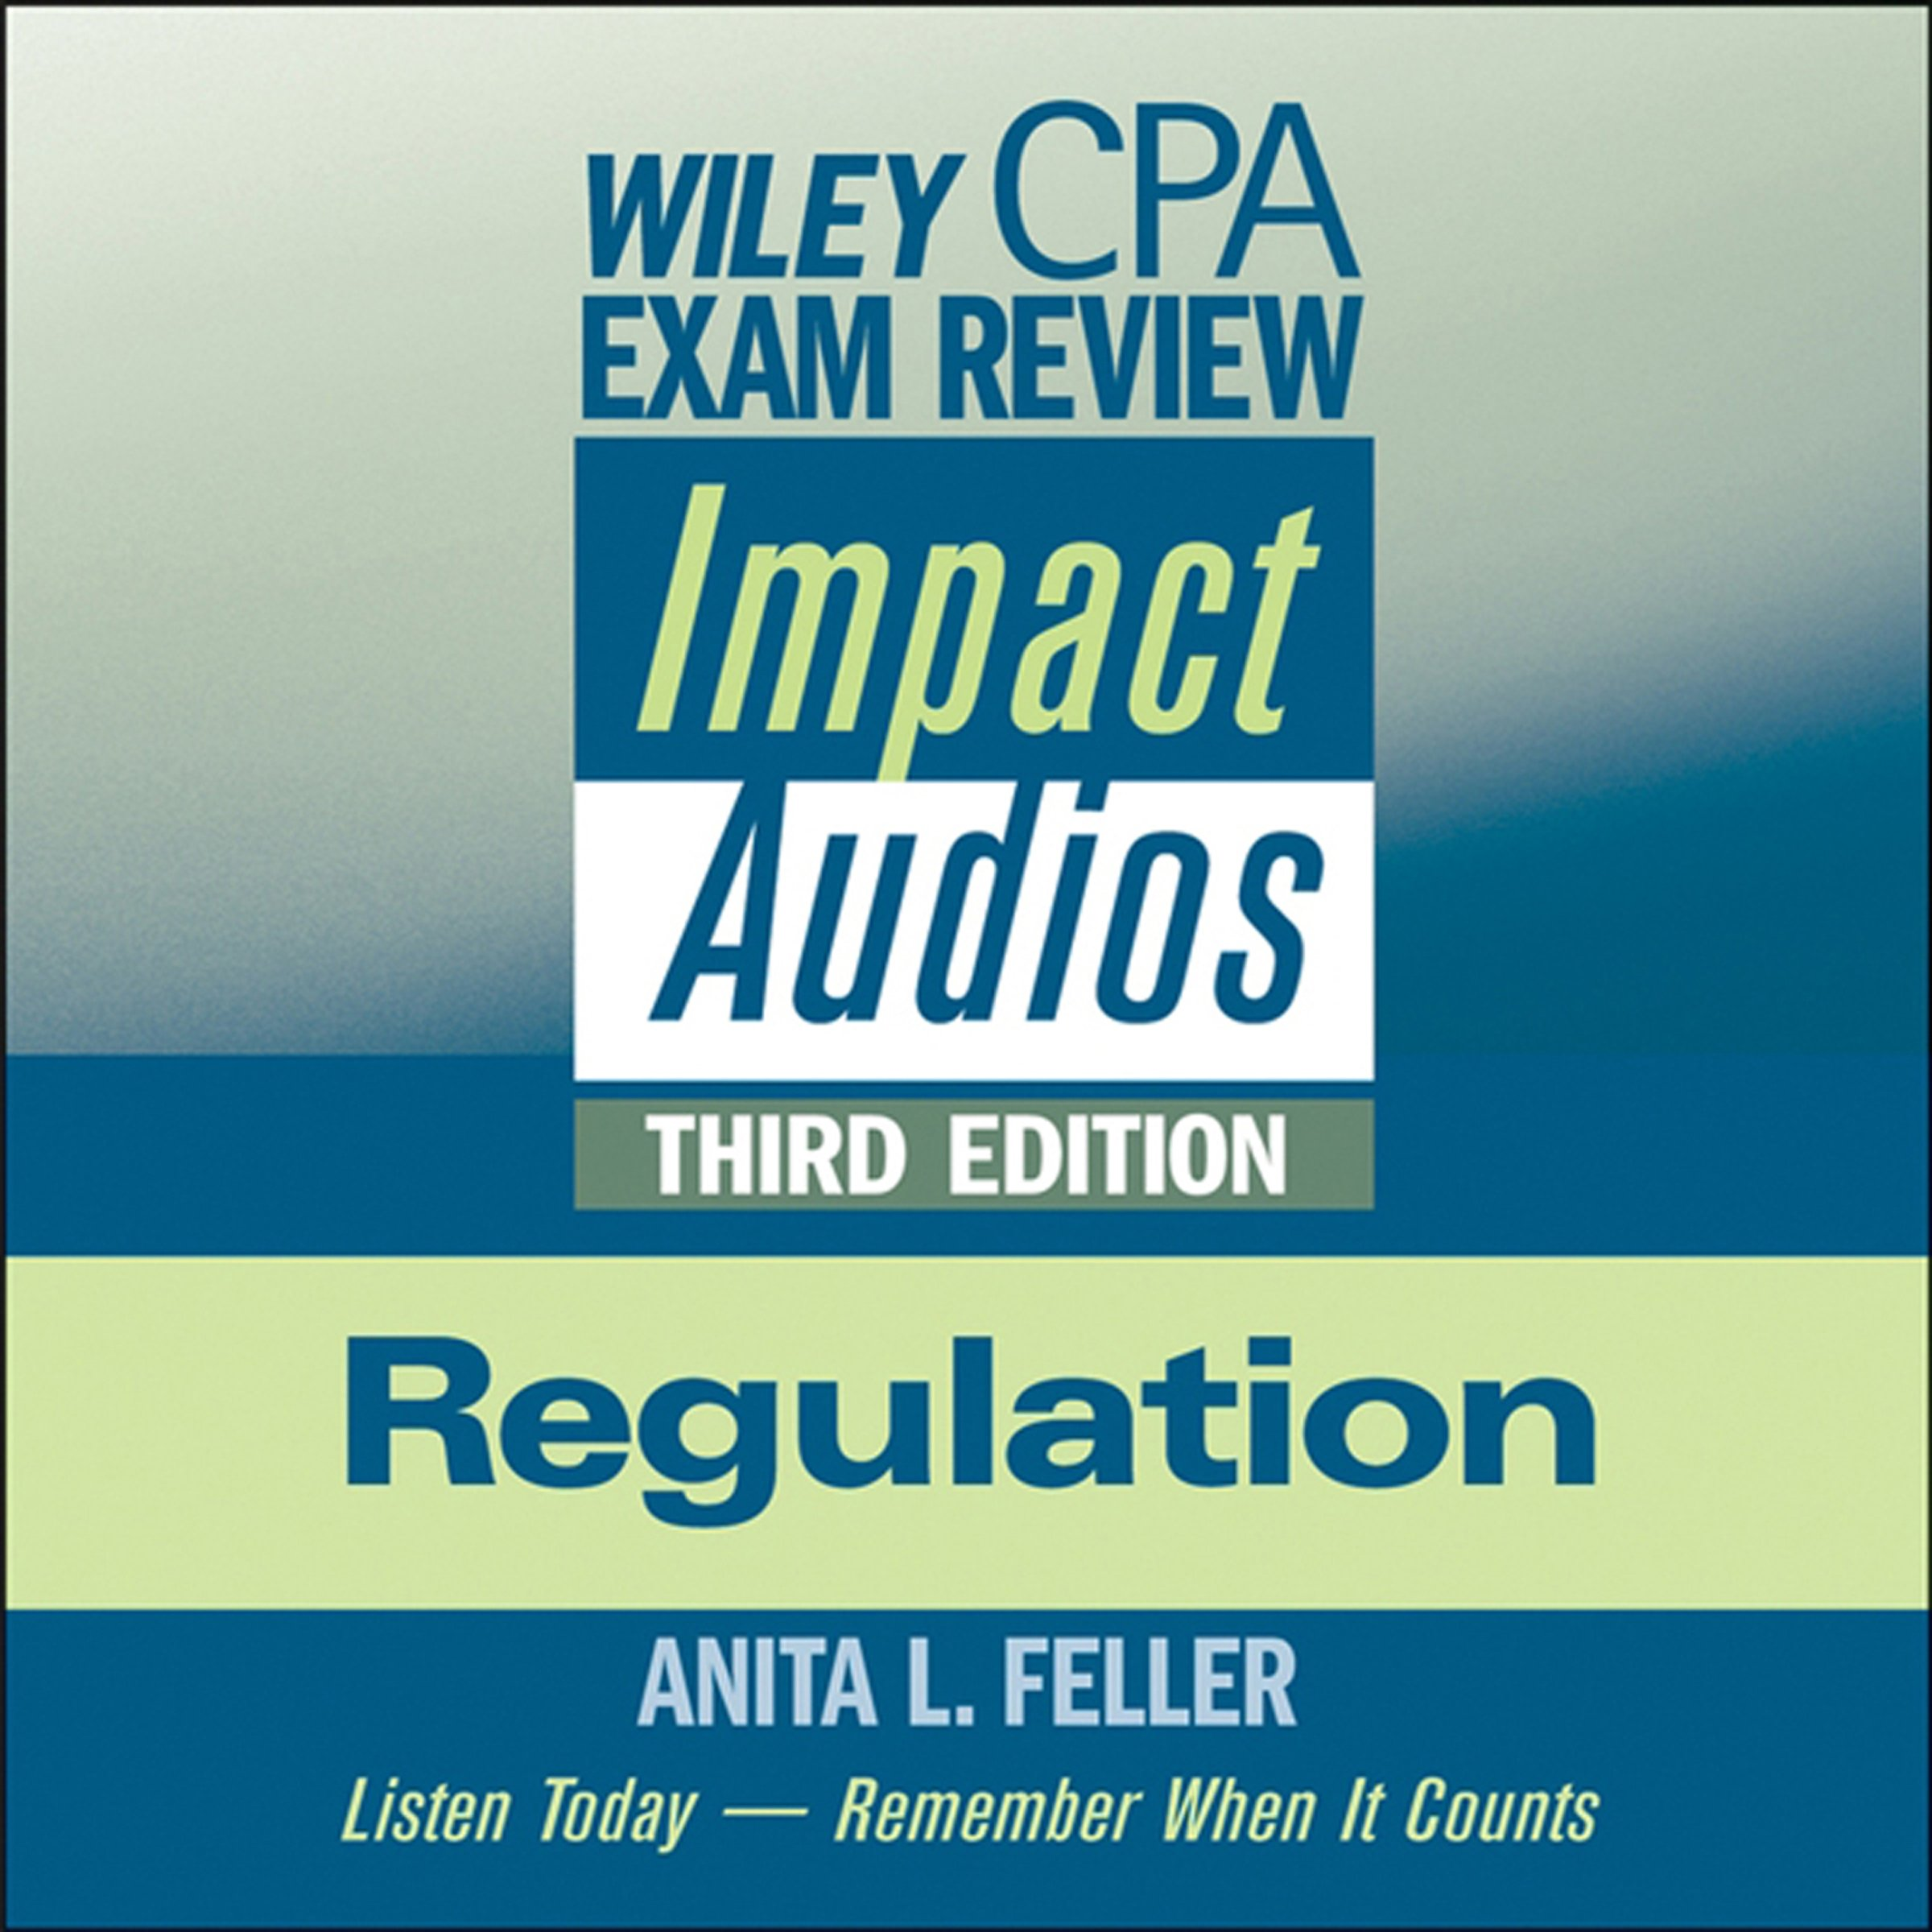 Wiley CPA Exam Review Impact Audios: Regulation, 3rd Edition